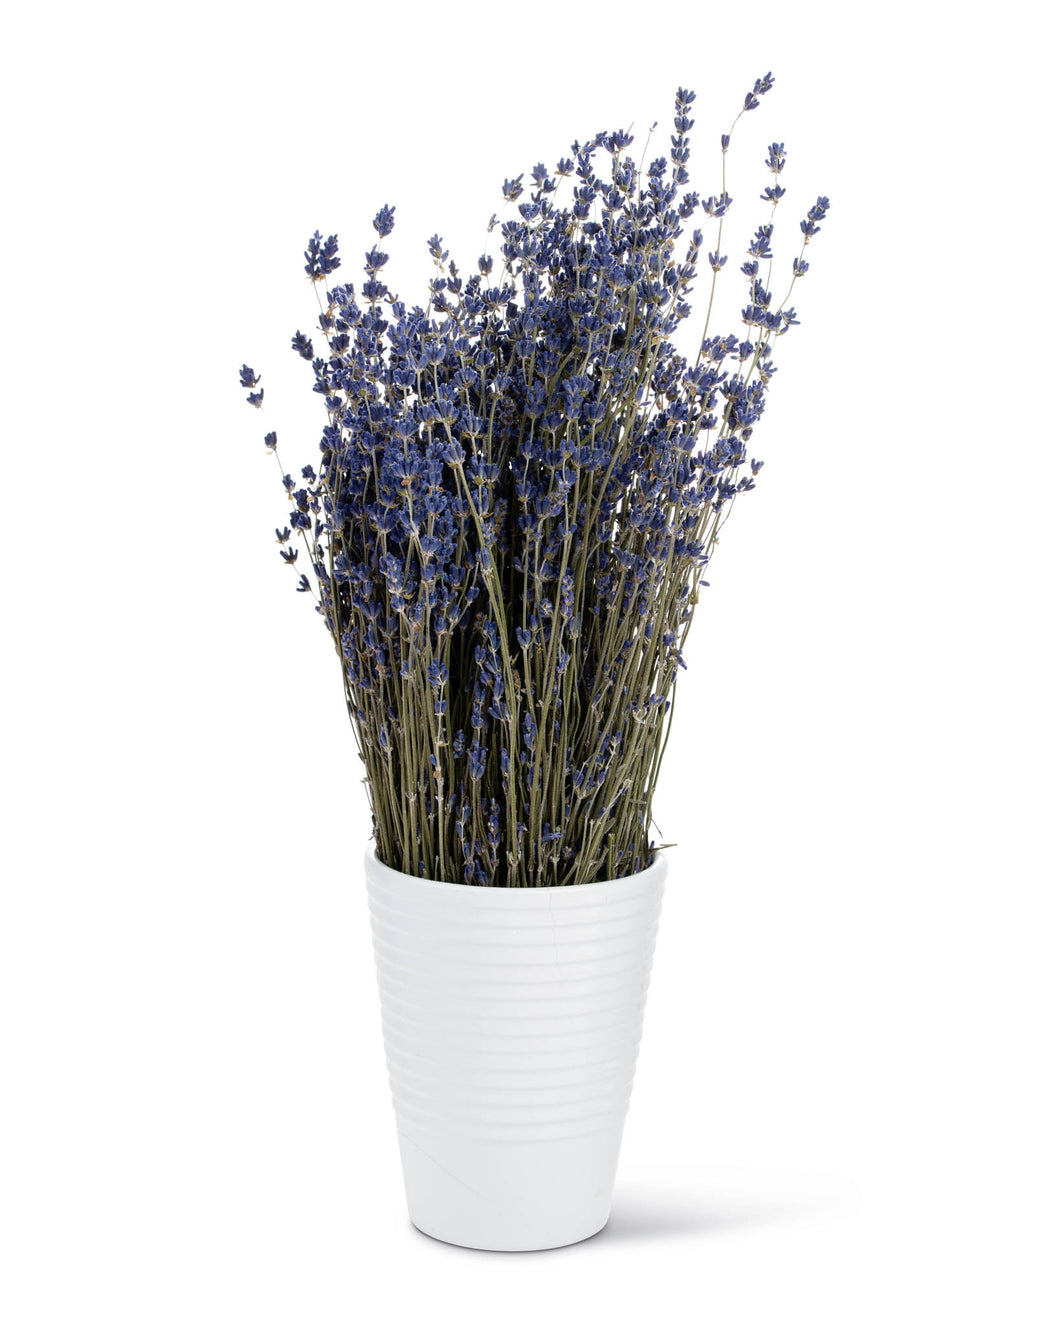 Dried English lavender